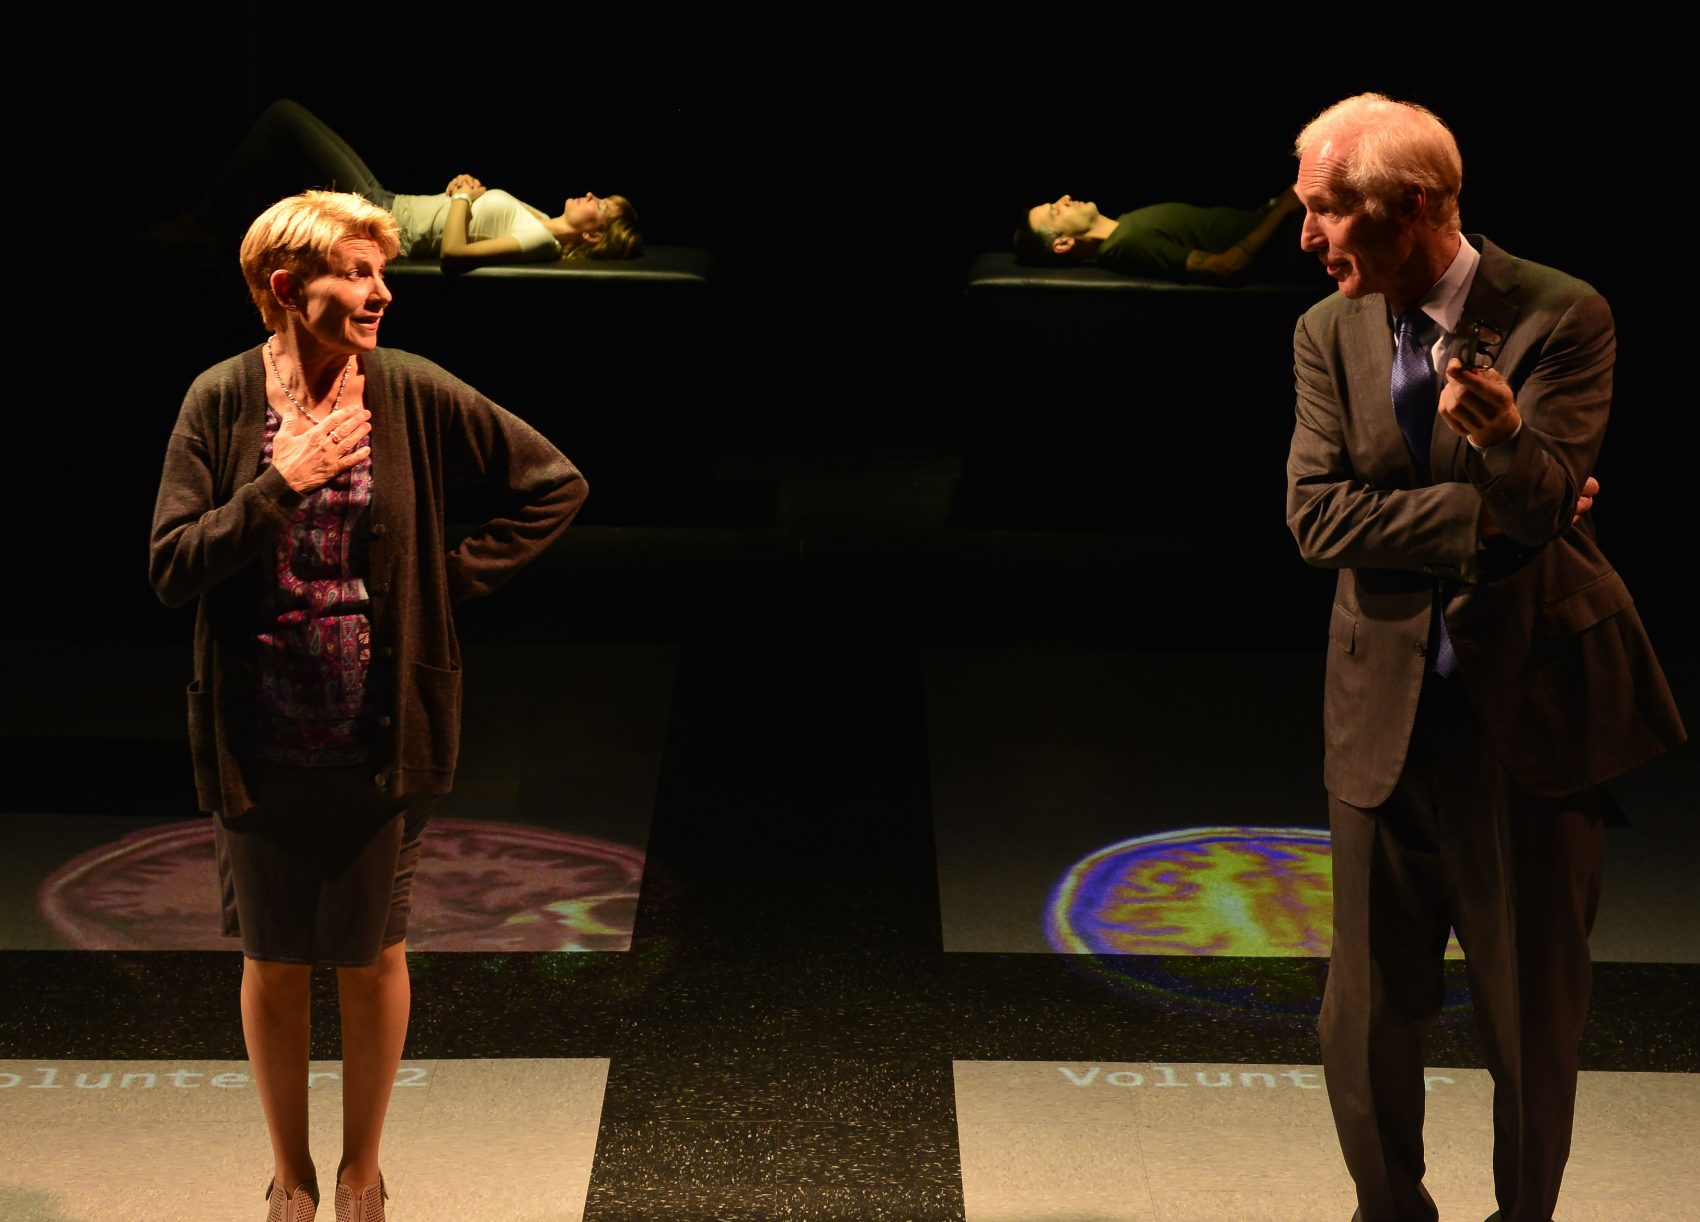 """Dr. Lorna James (Lindsay Crouse) and Dr. Toby Sealey (Brad Hall), with Connie (Susannah Hoffman) and Tristan (Mickey Solis) in the background in """"The Effect."""" (Courtesy Gary Ng/Gloucester Stage)"""